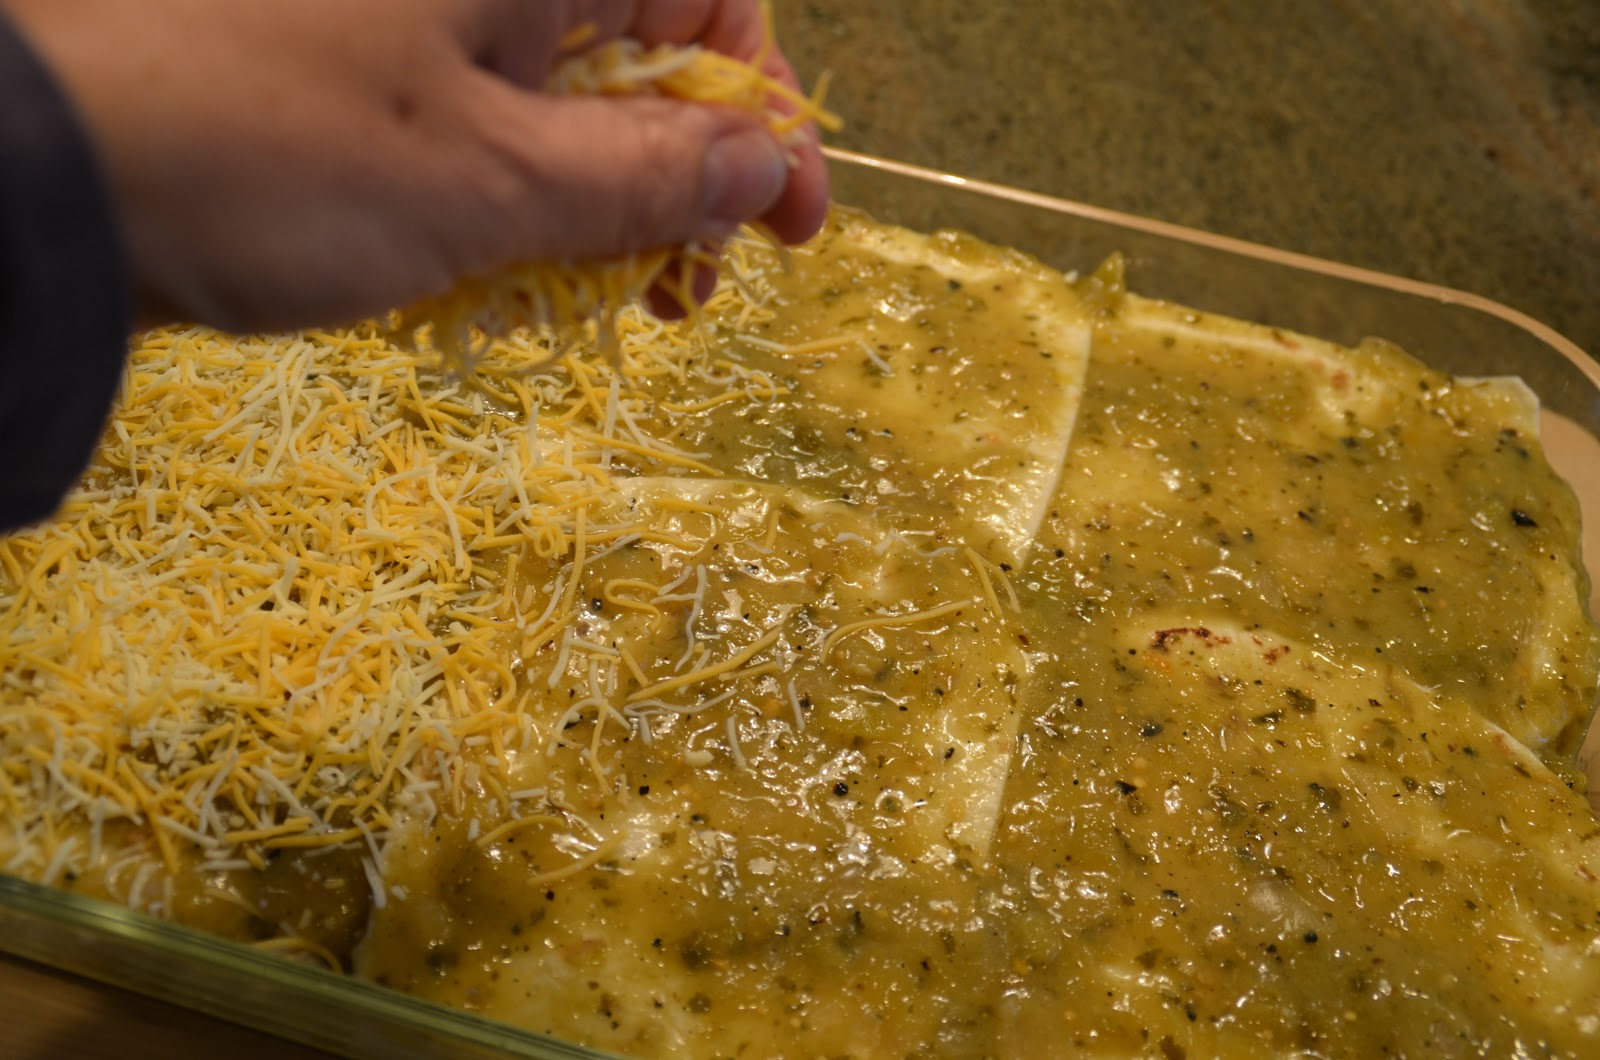 ... get that recipe?: 5 Course Mexican Fiesta: Chicken Enchilada Casserole